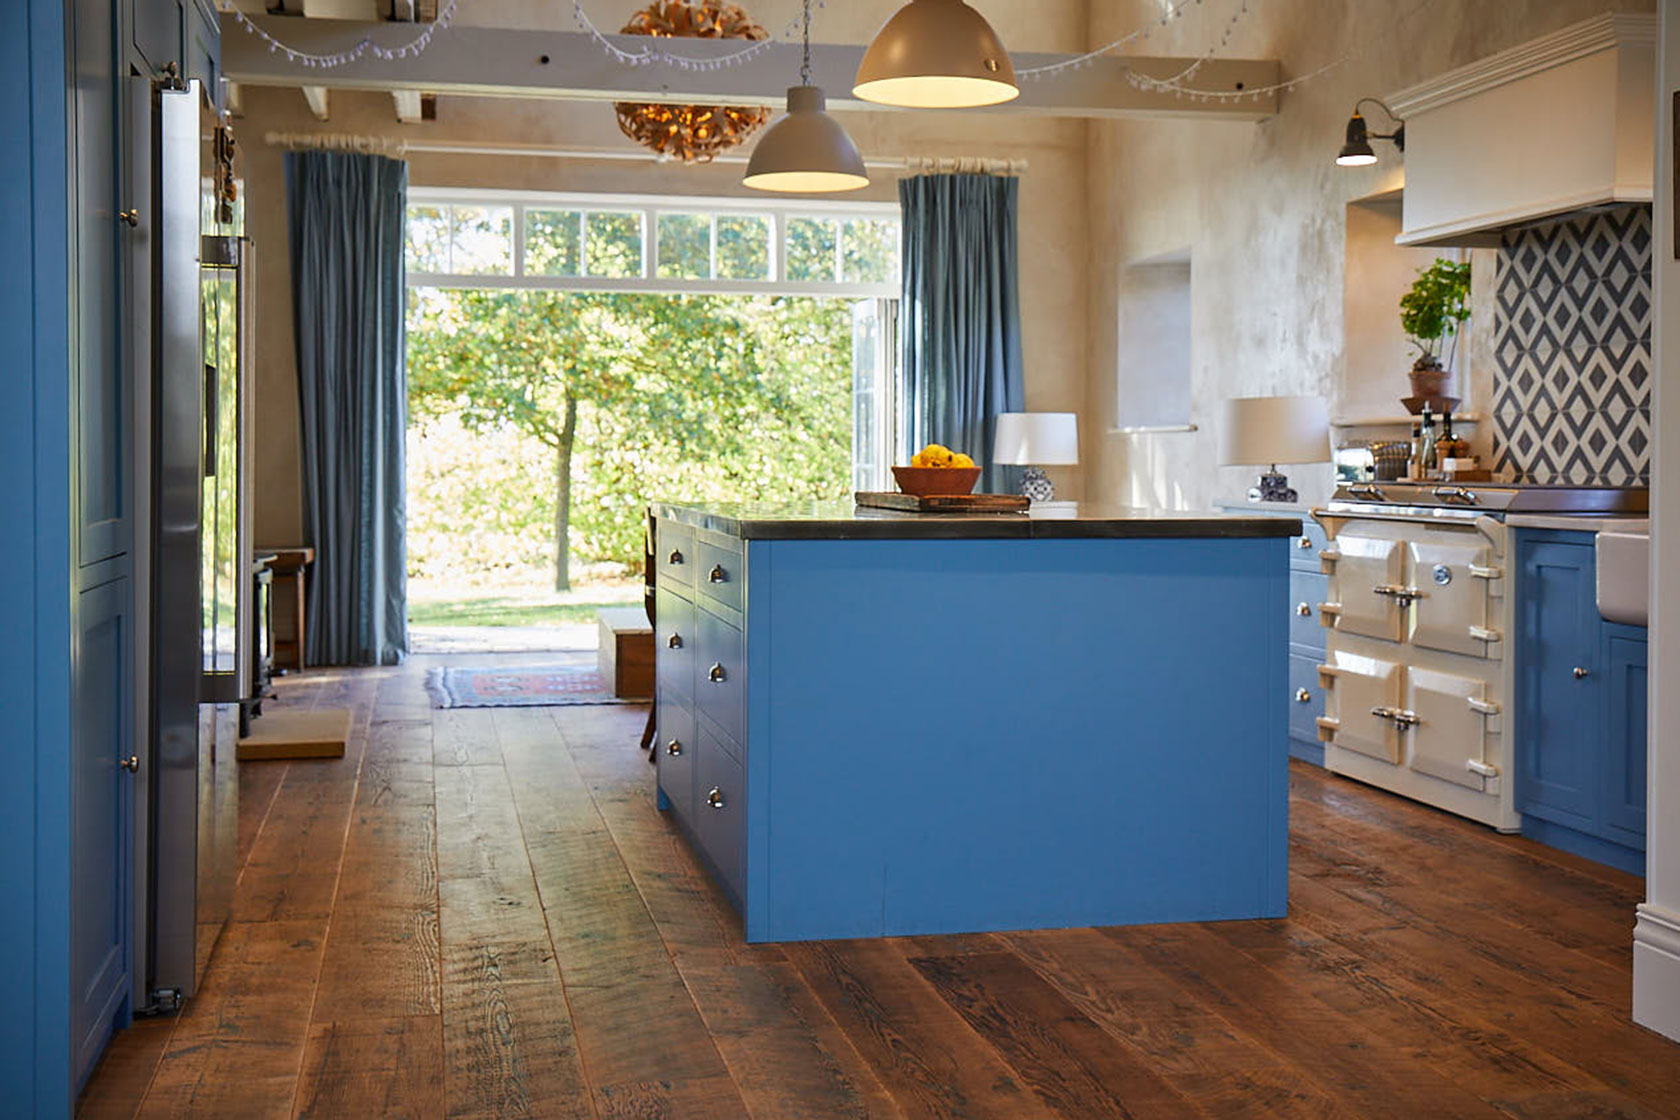 Flat baby blue end panel with pinewood engineered floor boards